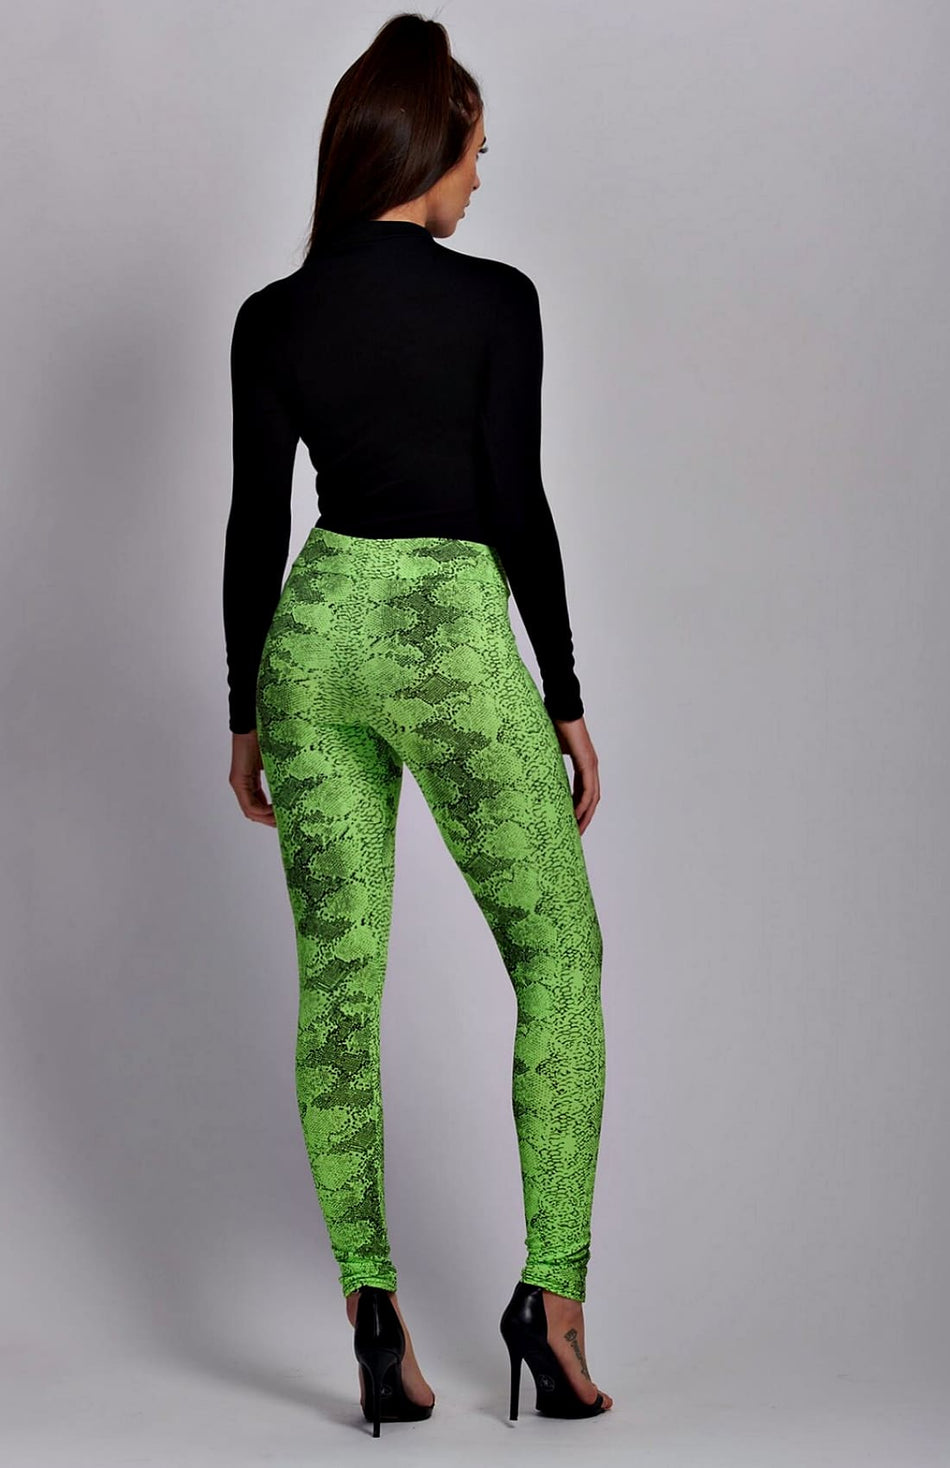 Leggings con estampado de serpiente verde neón